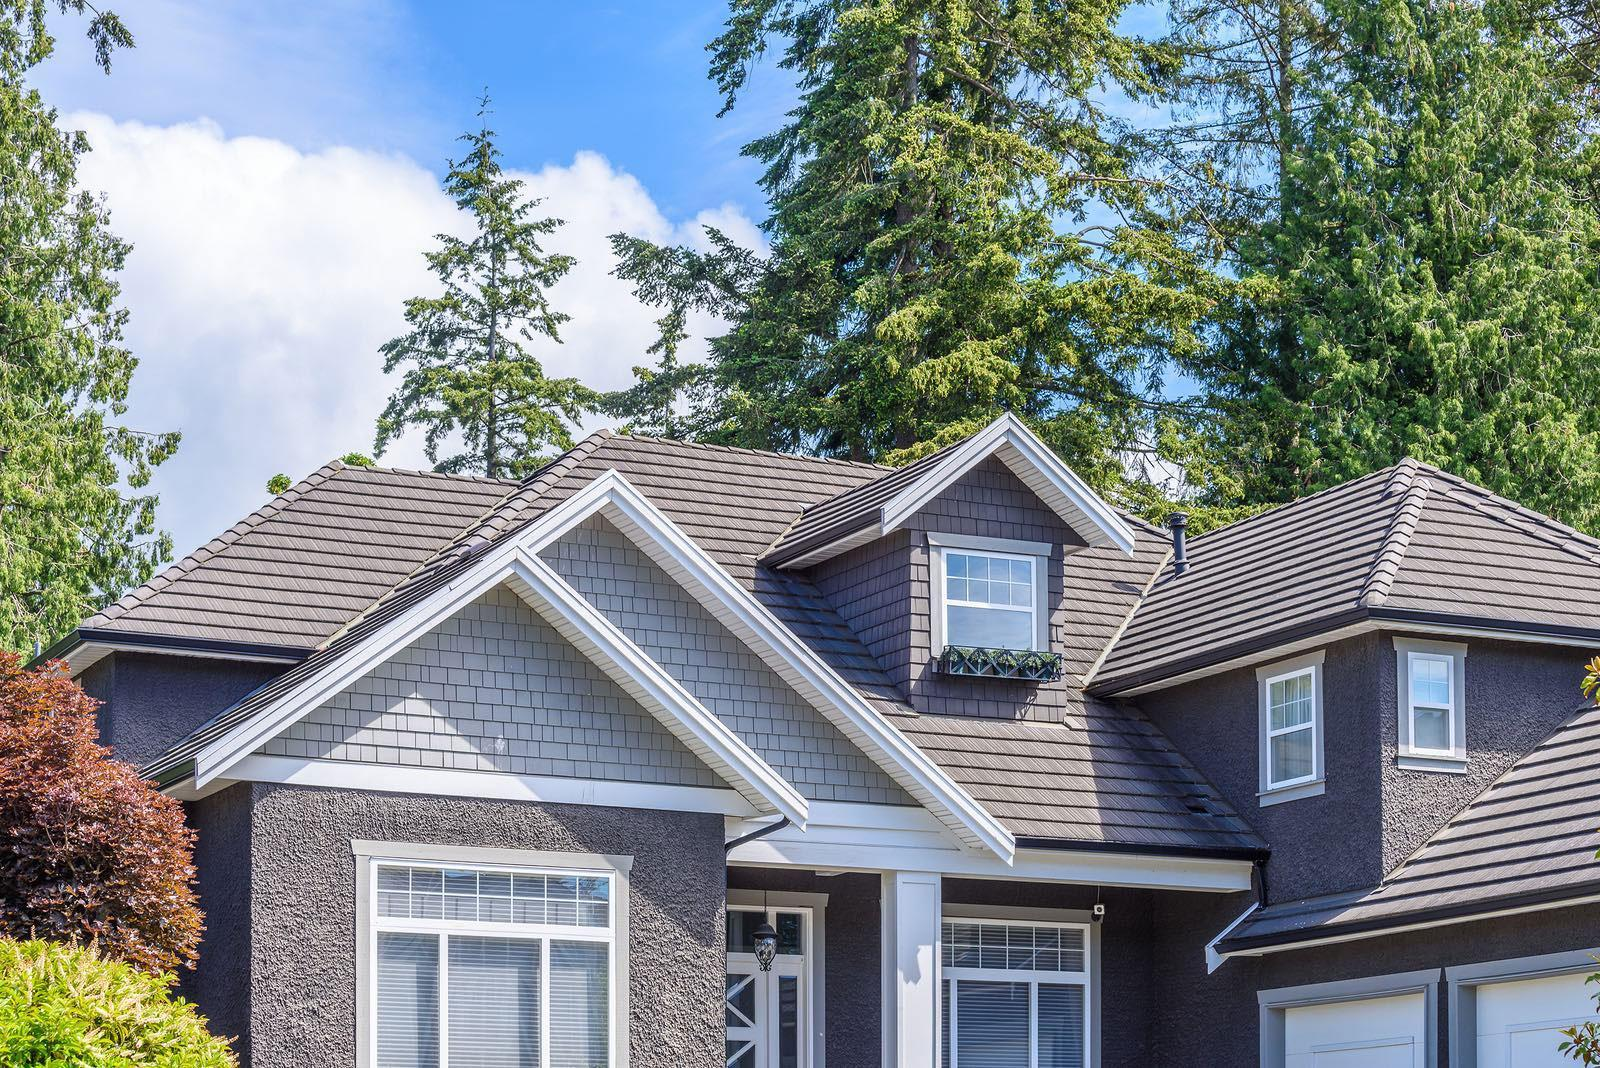 How to Use Your Home Insurance For Roof Repairs and Replacement